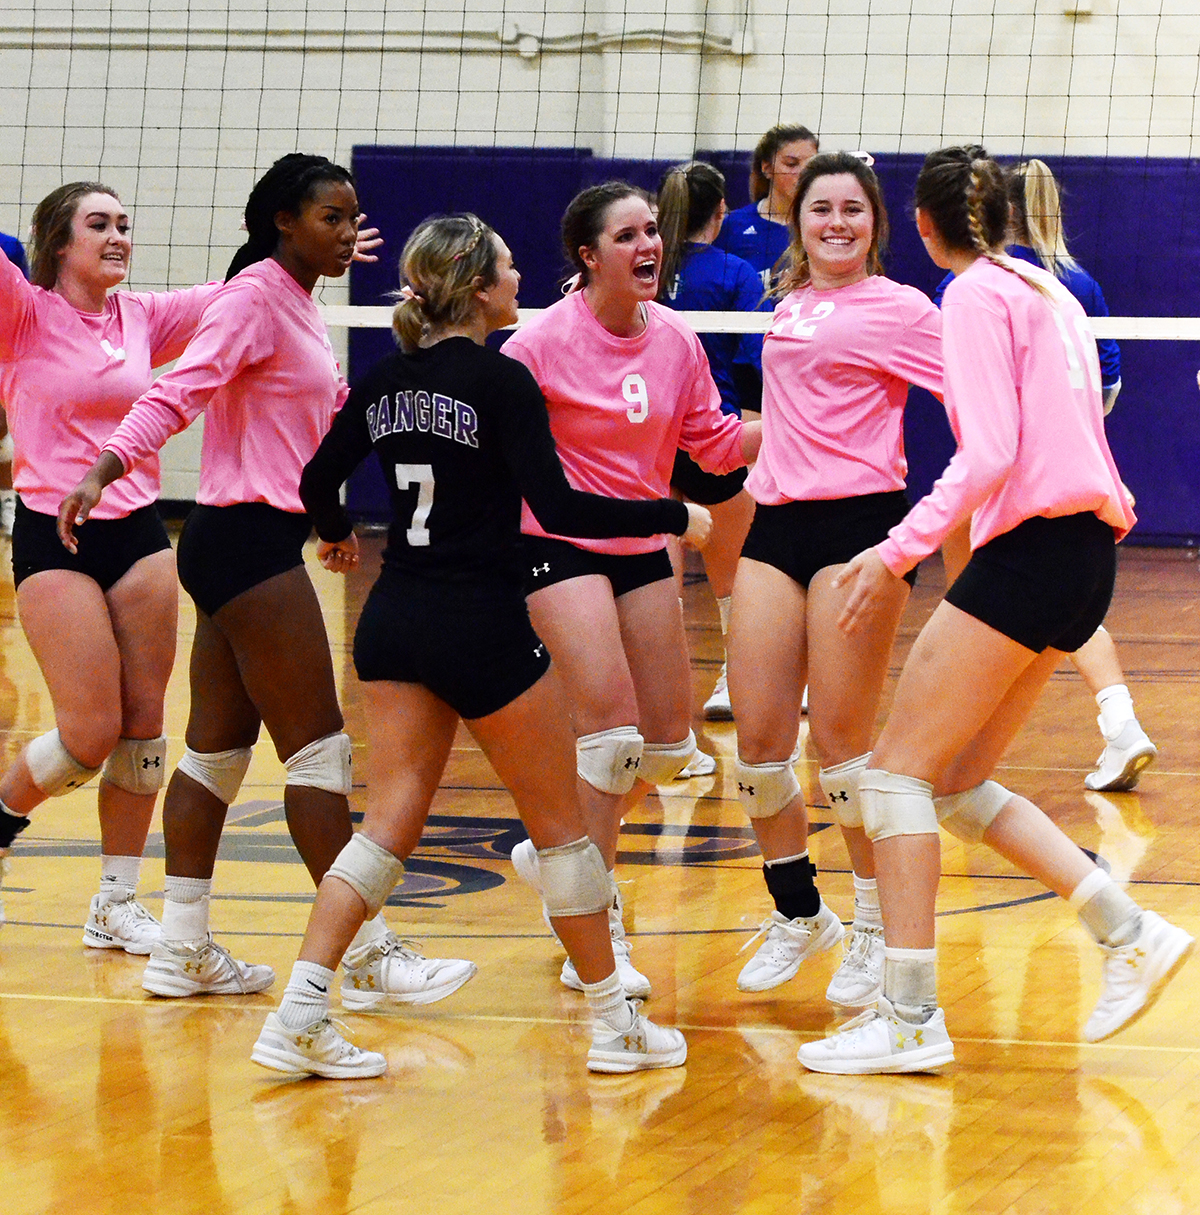 Ranger College Volleyball Ranger College